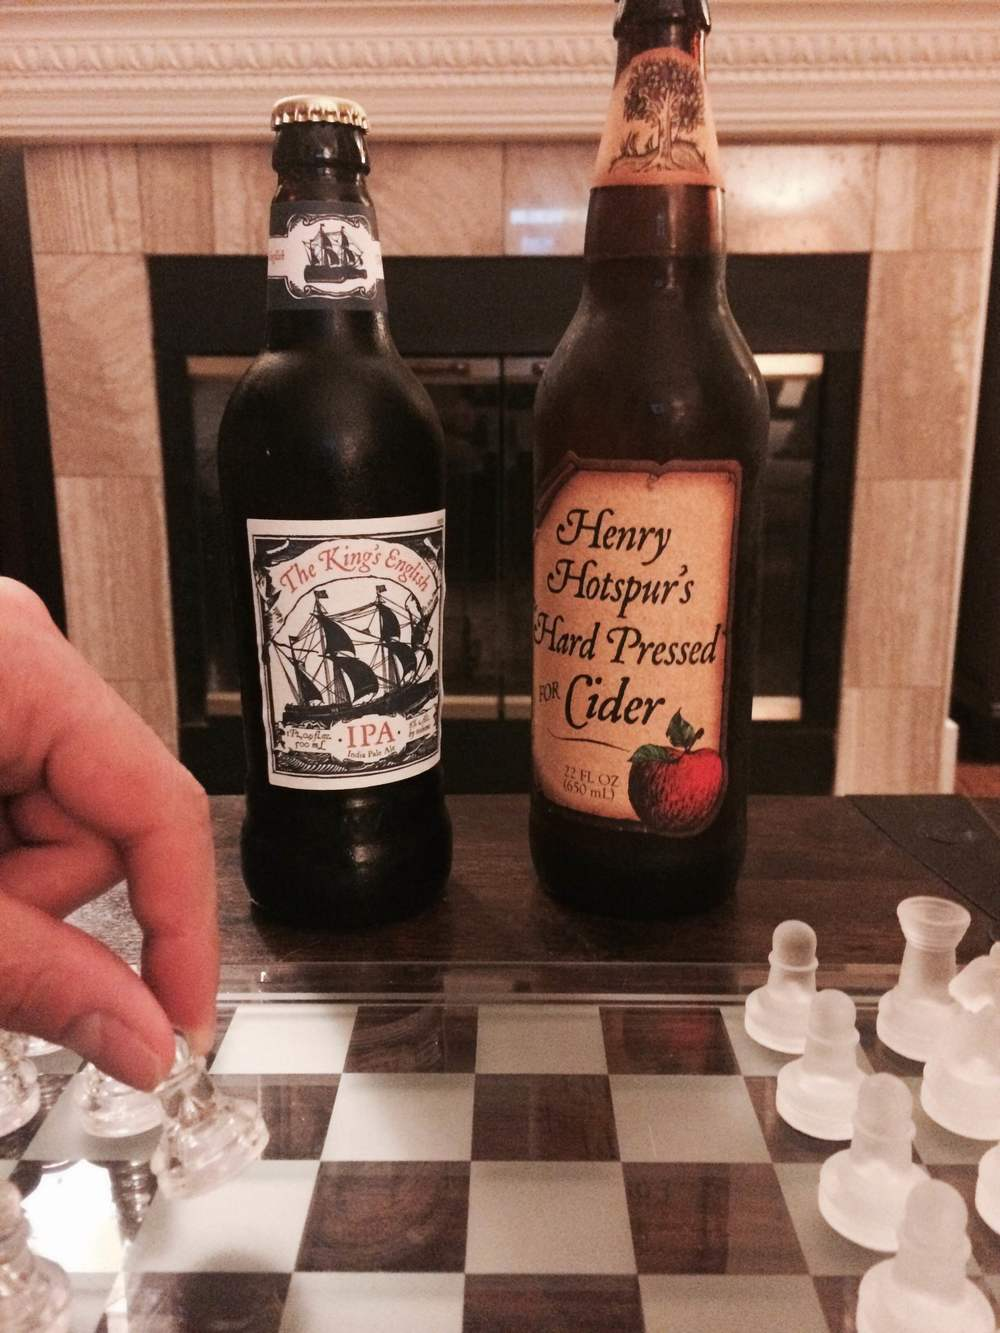 Hubs and I had a fun evening pitting Hotspur against the king, both in the metaphor of chess and the actuality of booze.  The cider was good, but I'd expect something with a bit more punch and fire based on its namesake...